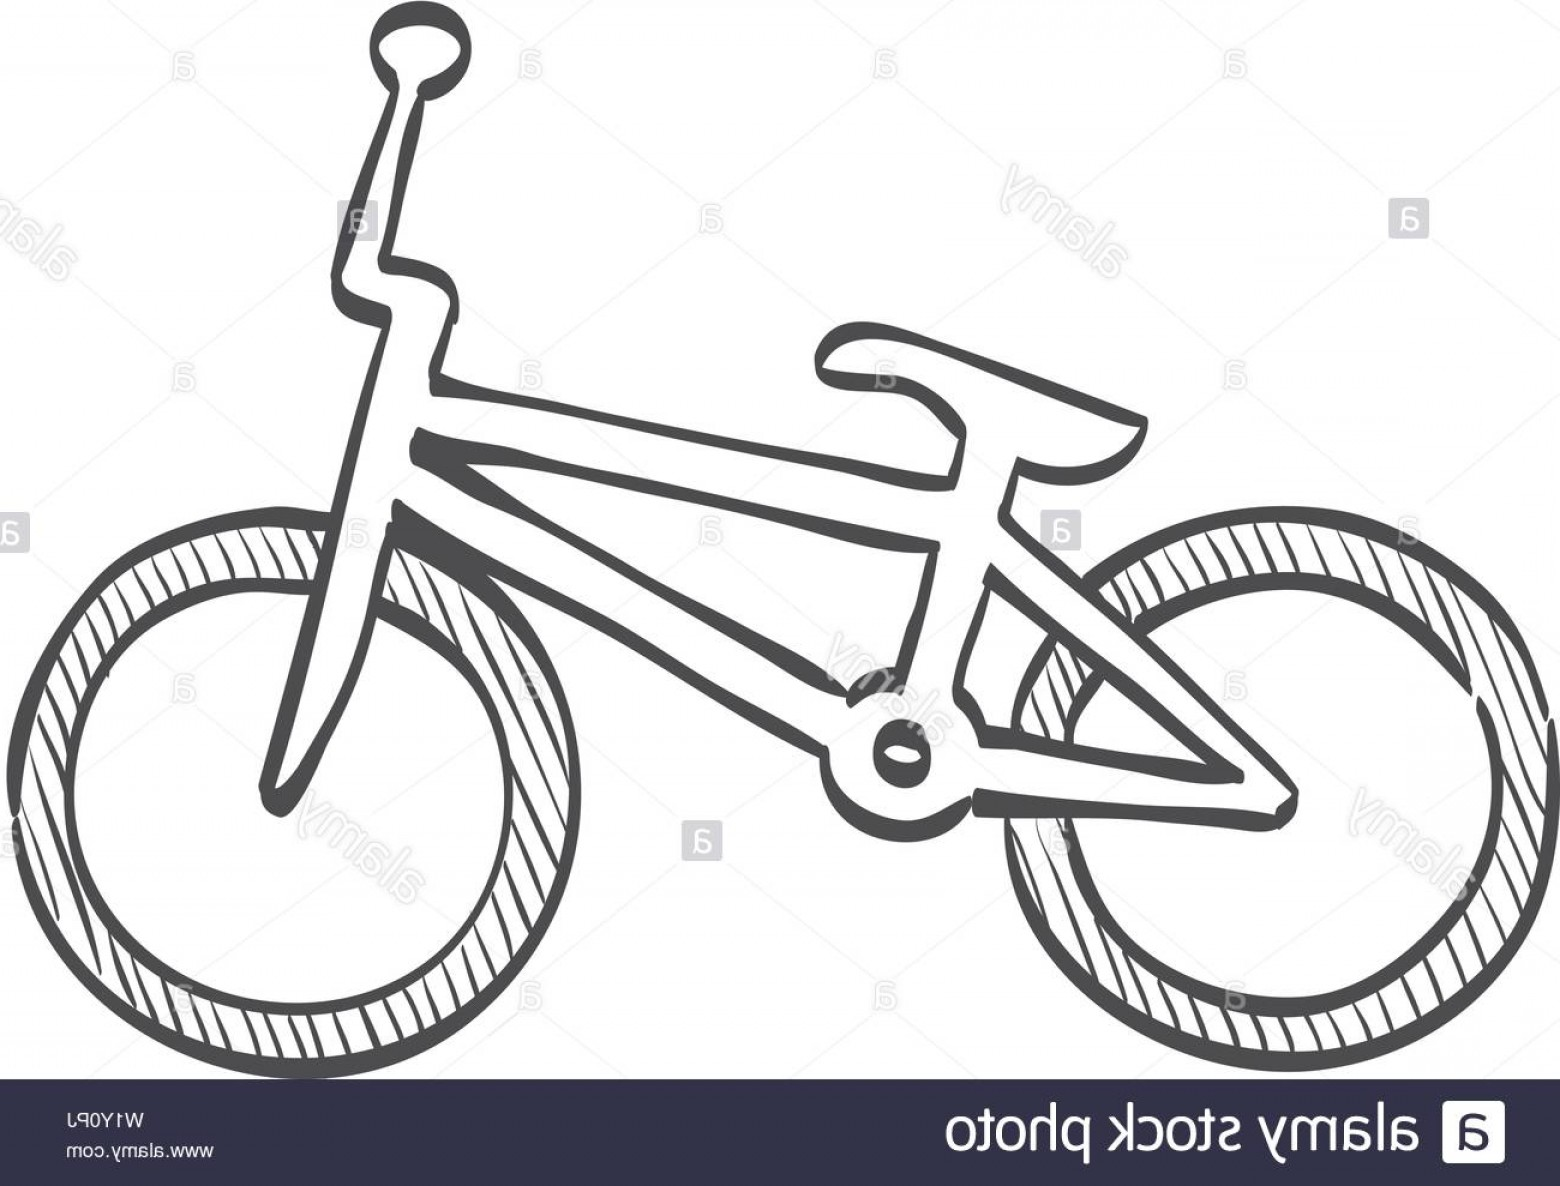 BMX Bike Tire Vector: Bmx Bicycle Icon In Doodle Sketch Lines Sport Race Park Play Tricks Jump Kids Image